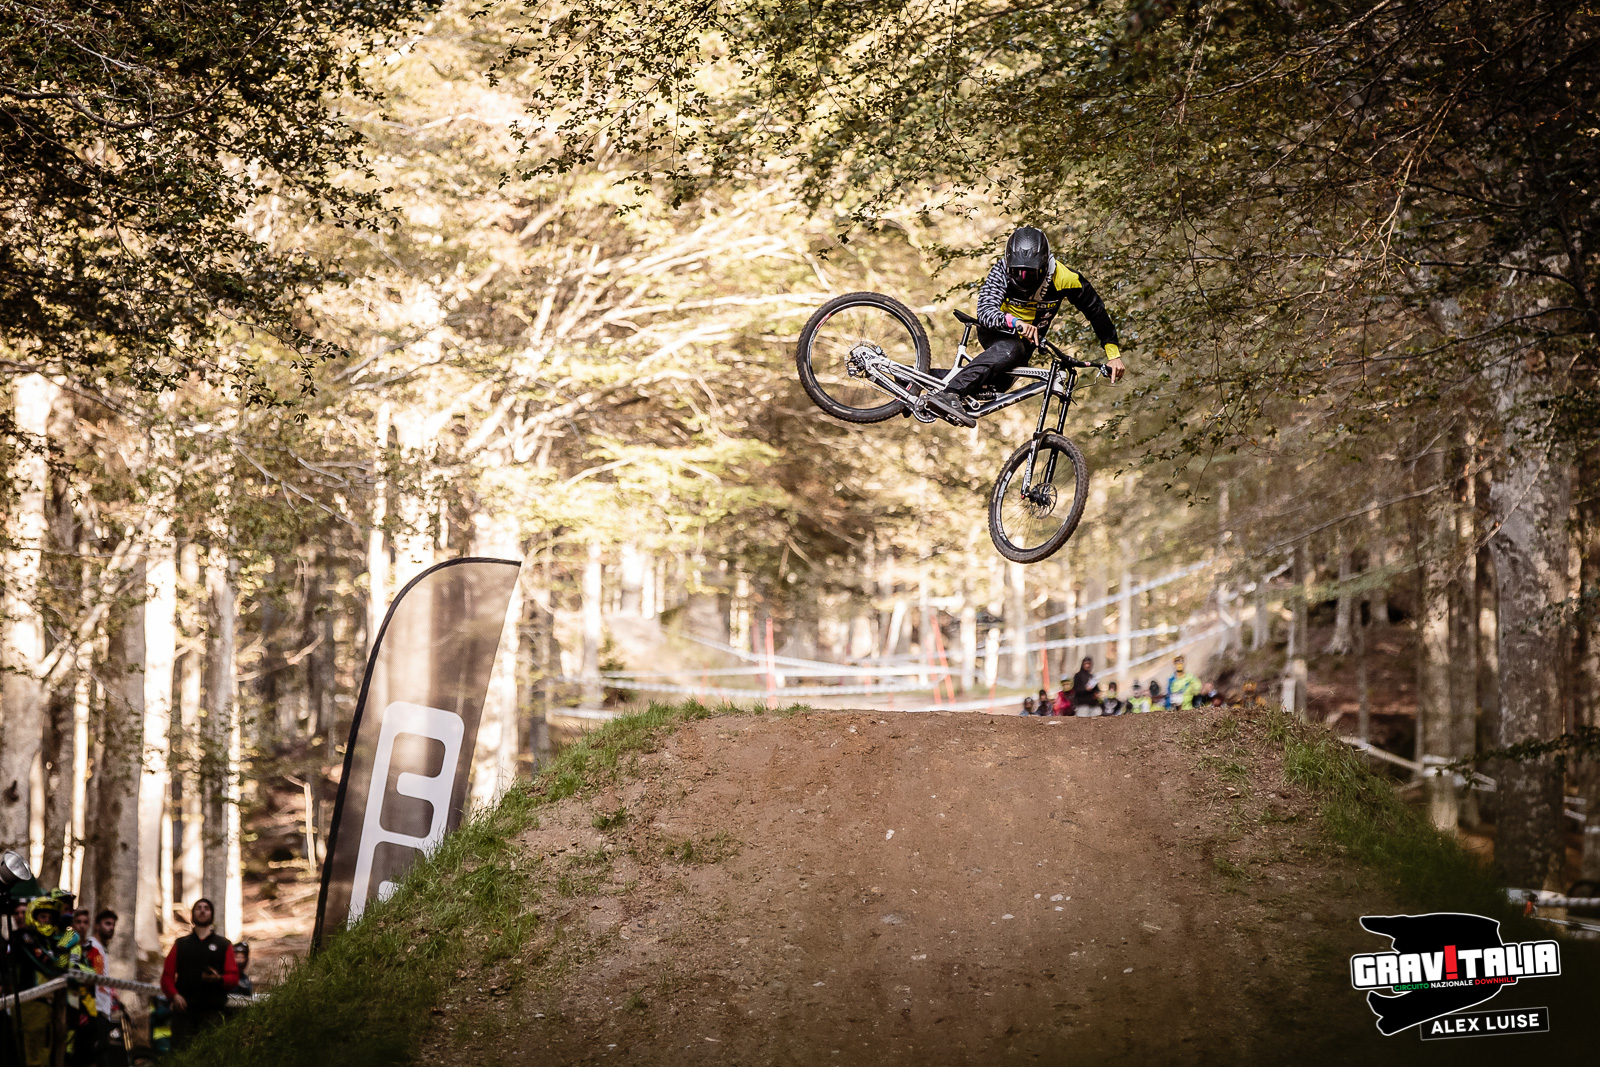 monte_amiata_whip_contest_12